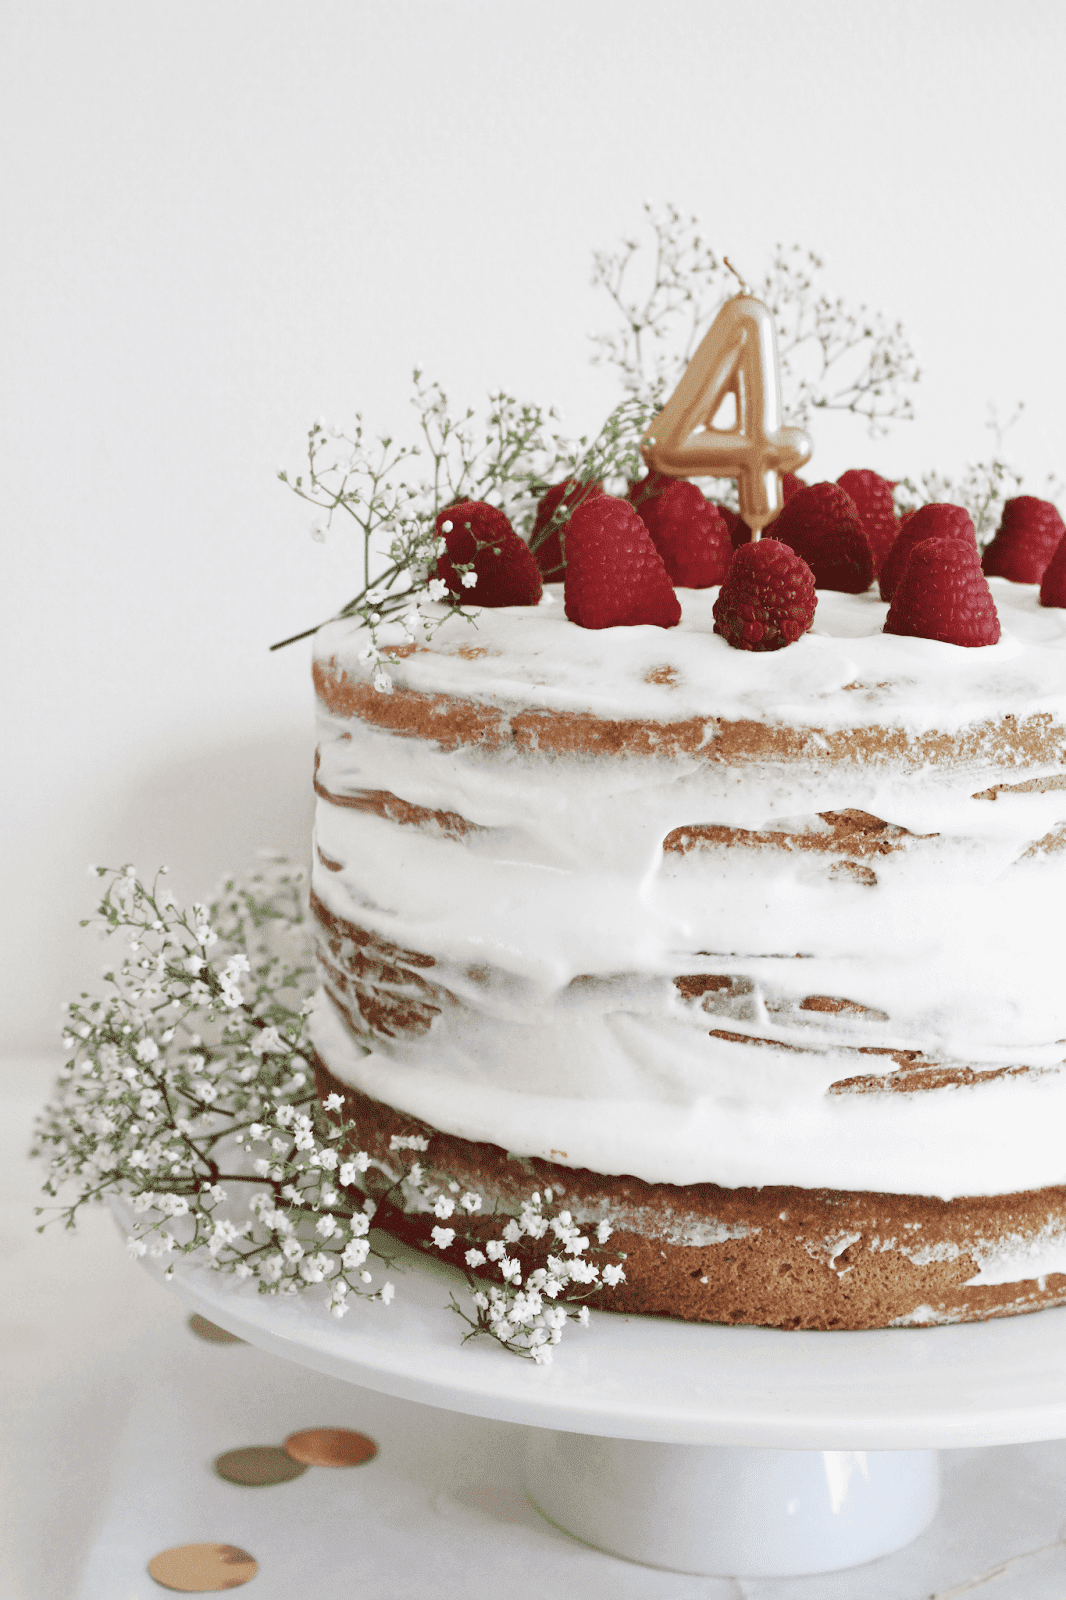 Mon naked cake aux fruits rouges. - Le notebook dEmy